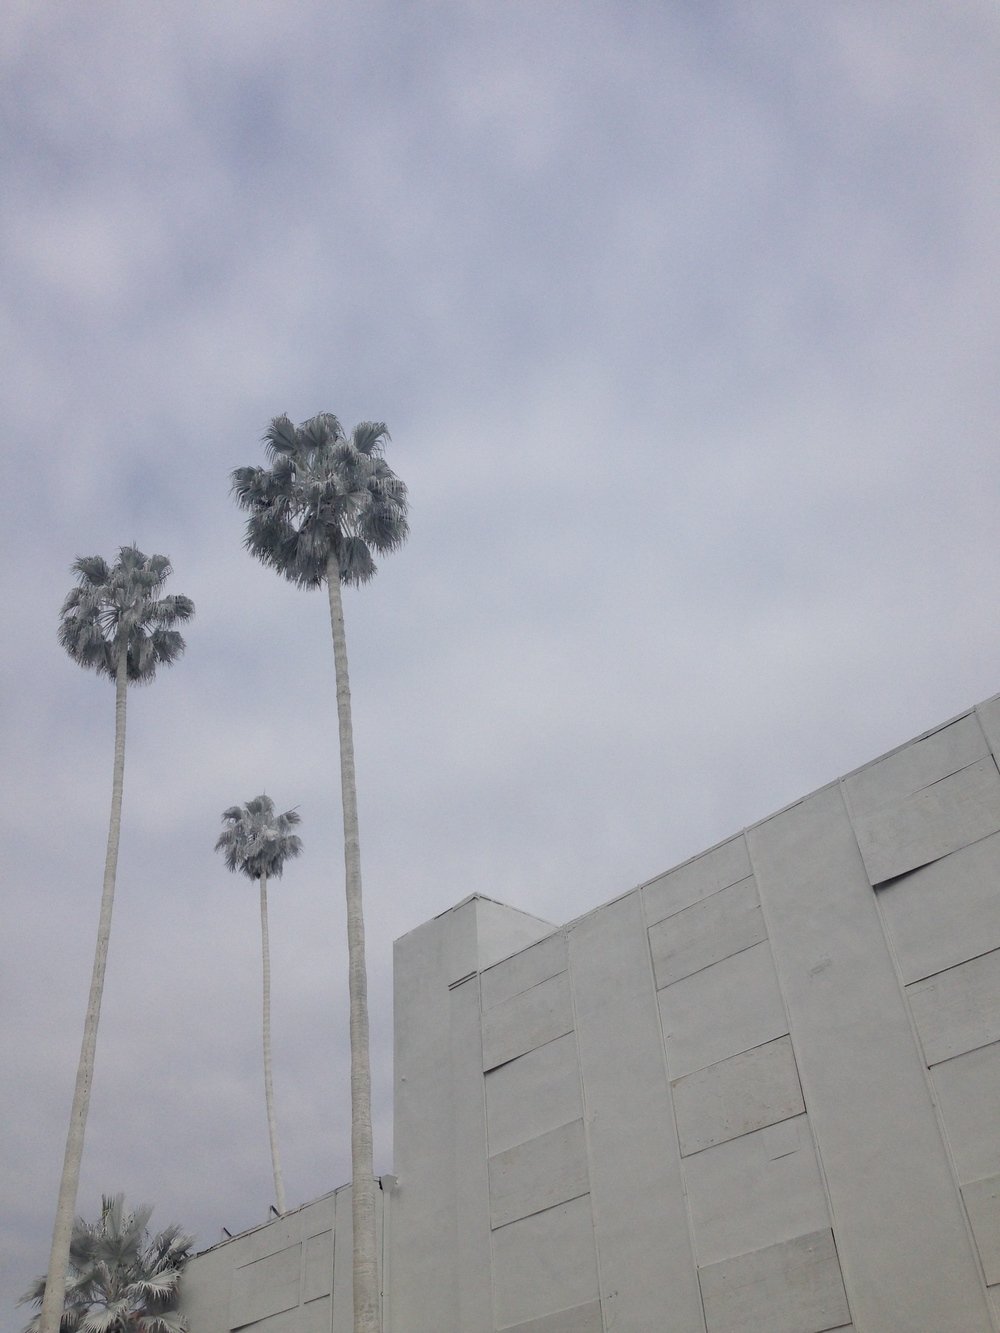 The Bates Motel, Art installation by French artist Vincent Lamouroux in Silver Lake, Los Angeles